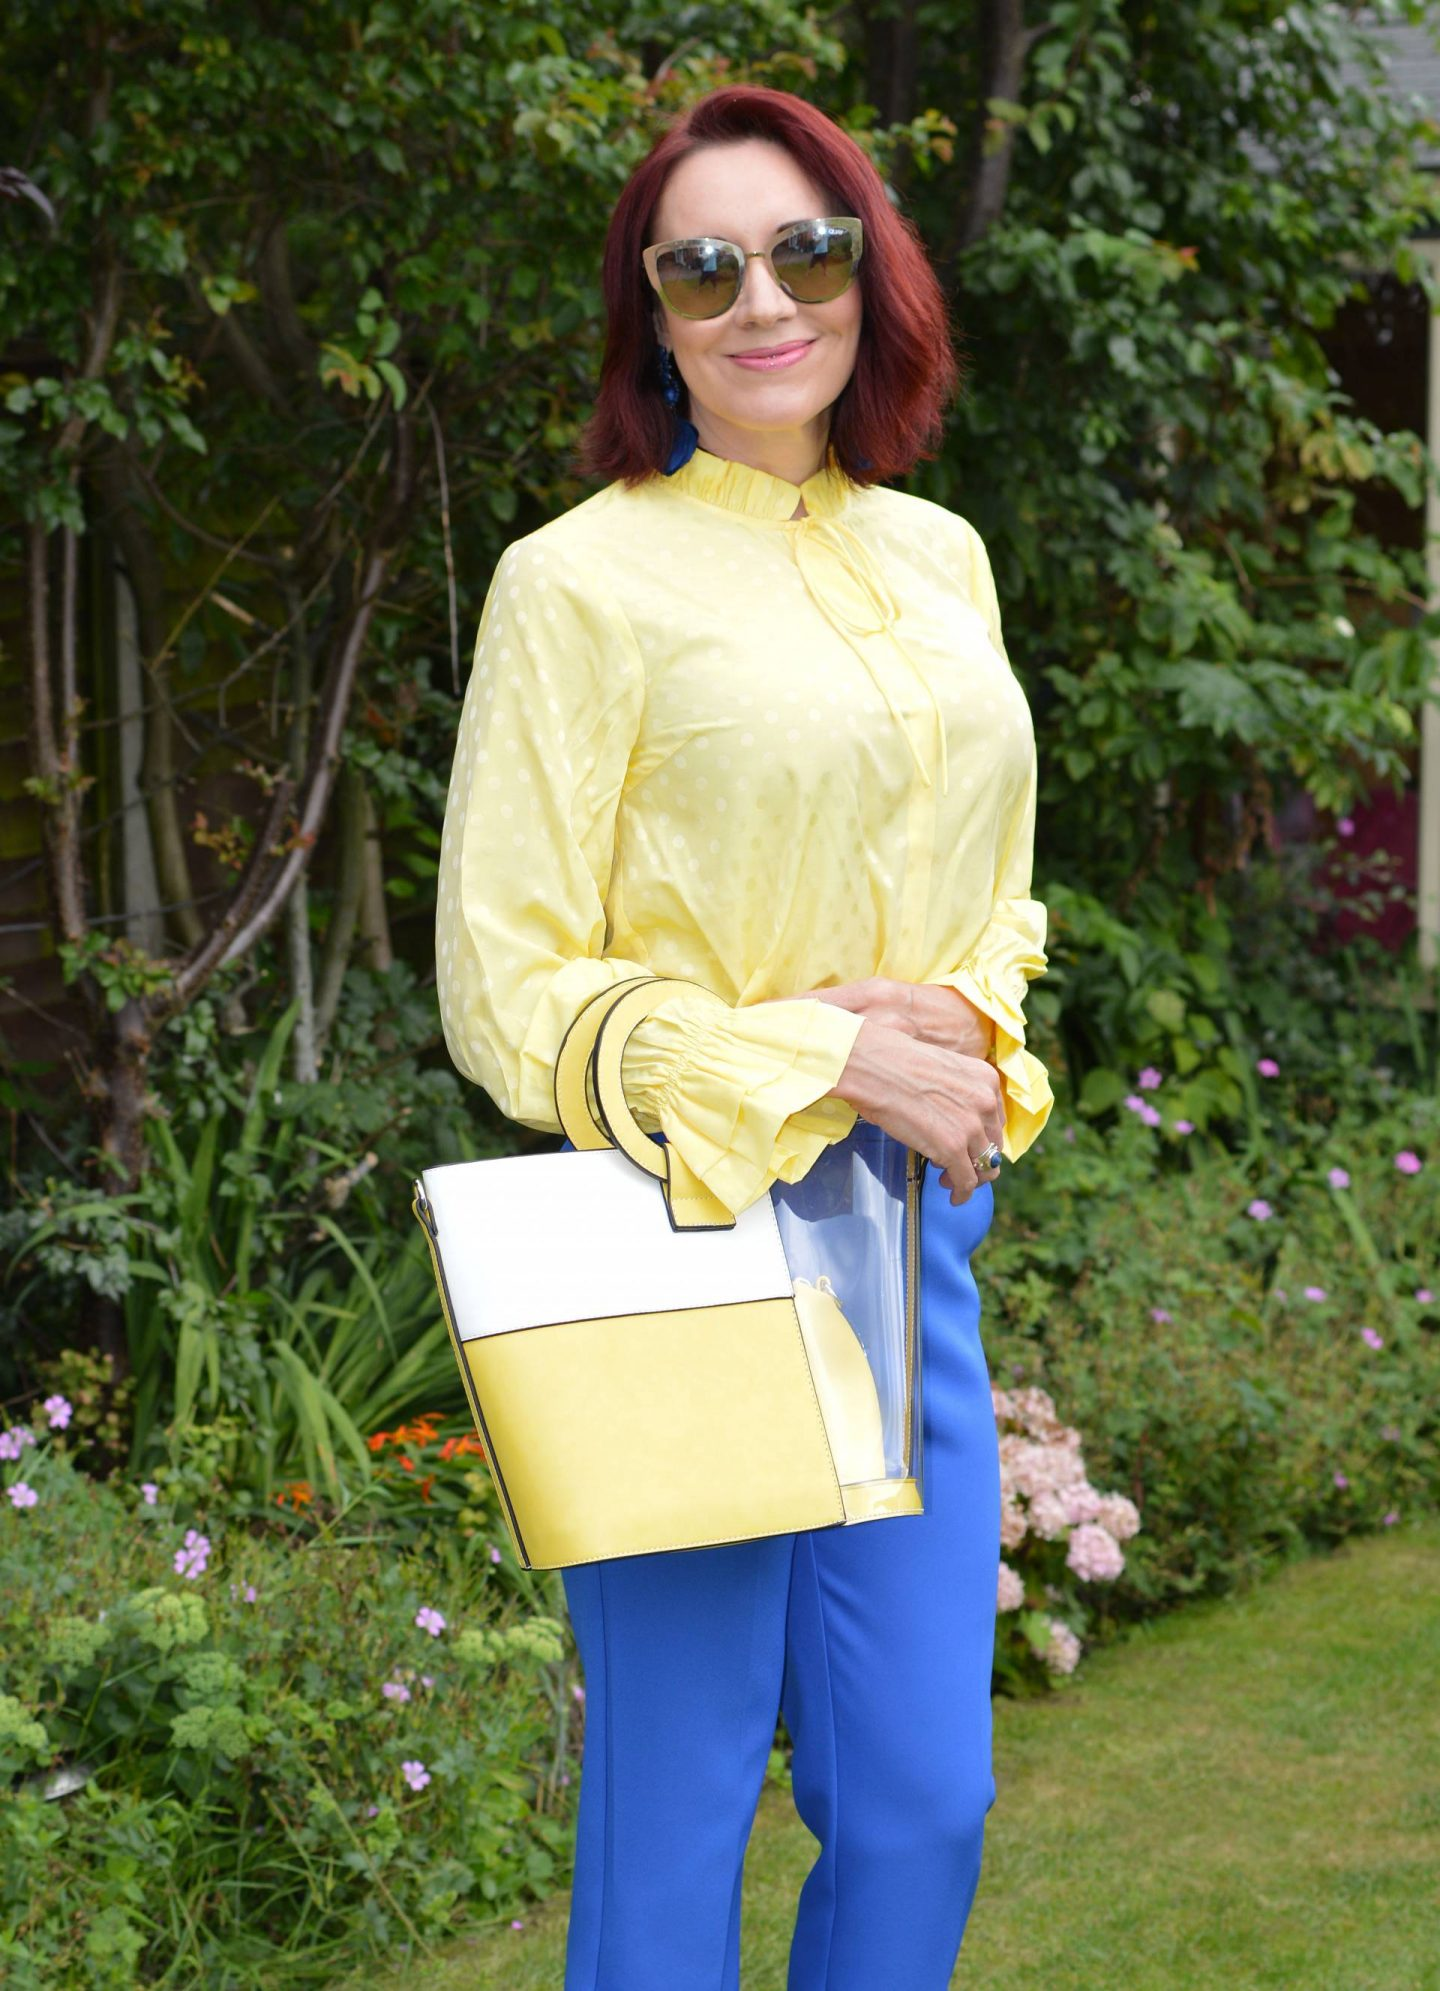 Yellow Second Femal Mardi blouse, Quay Australia mirrored sunglasses